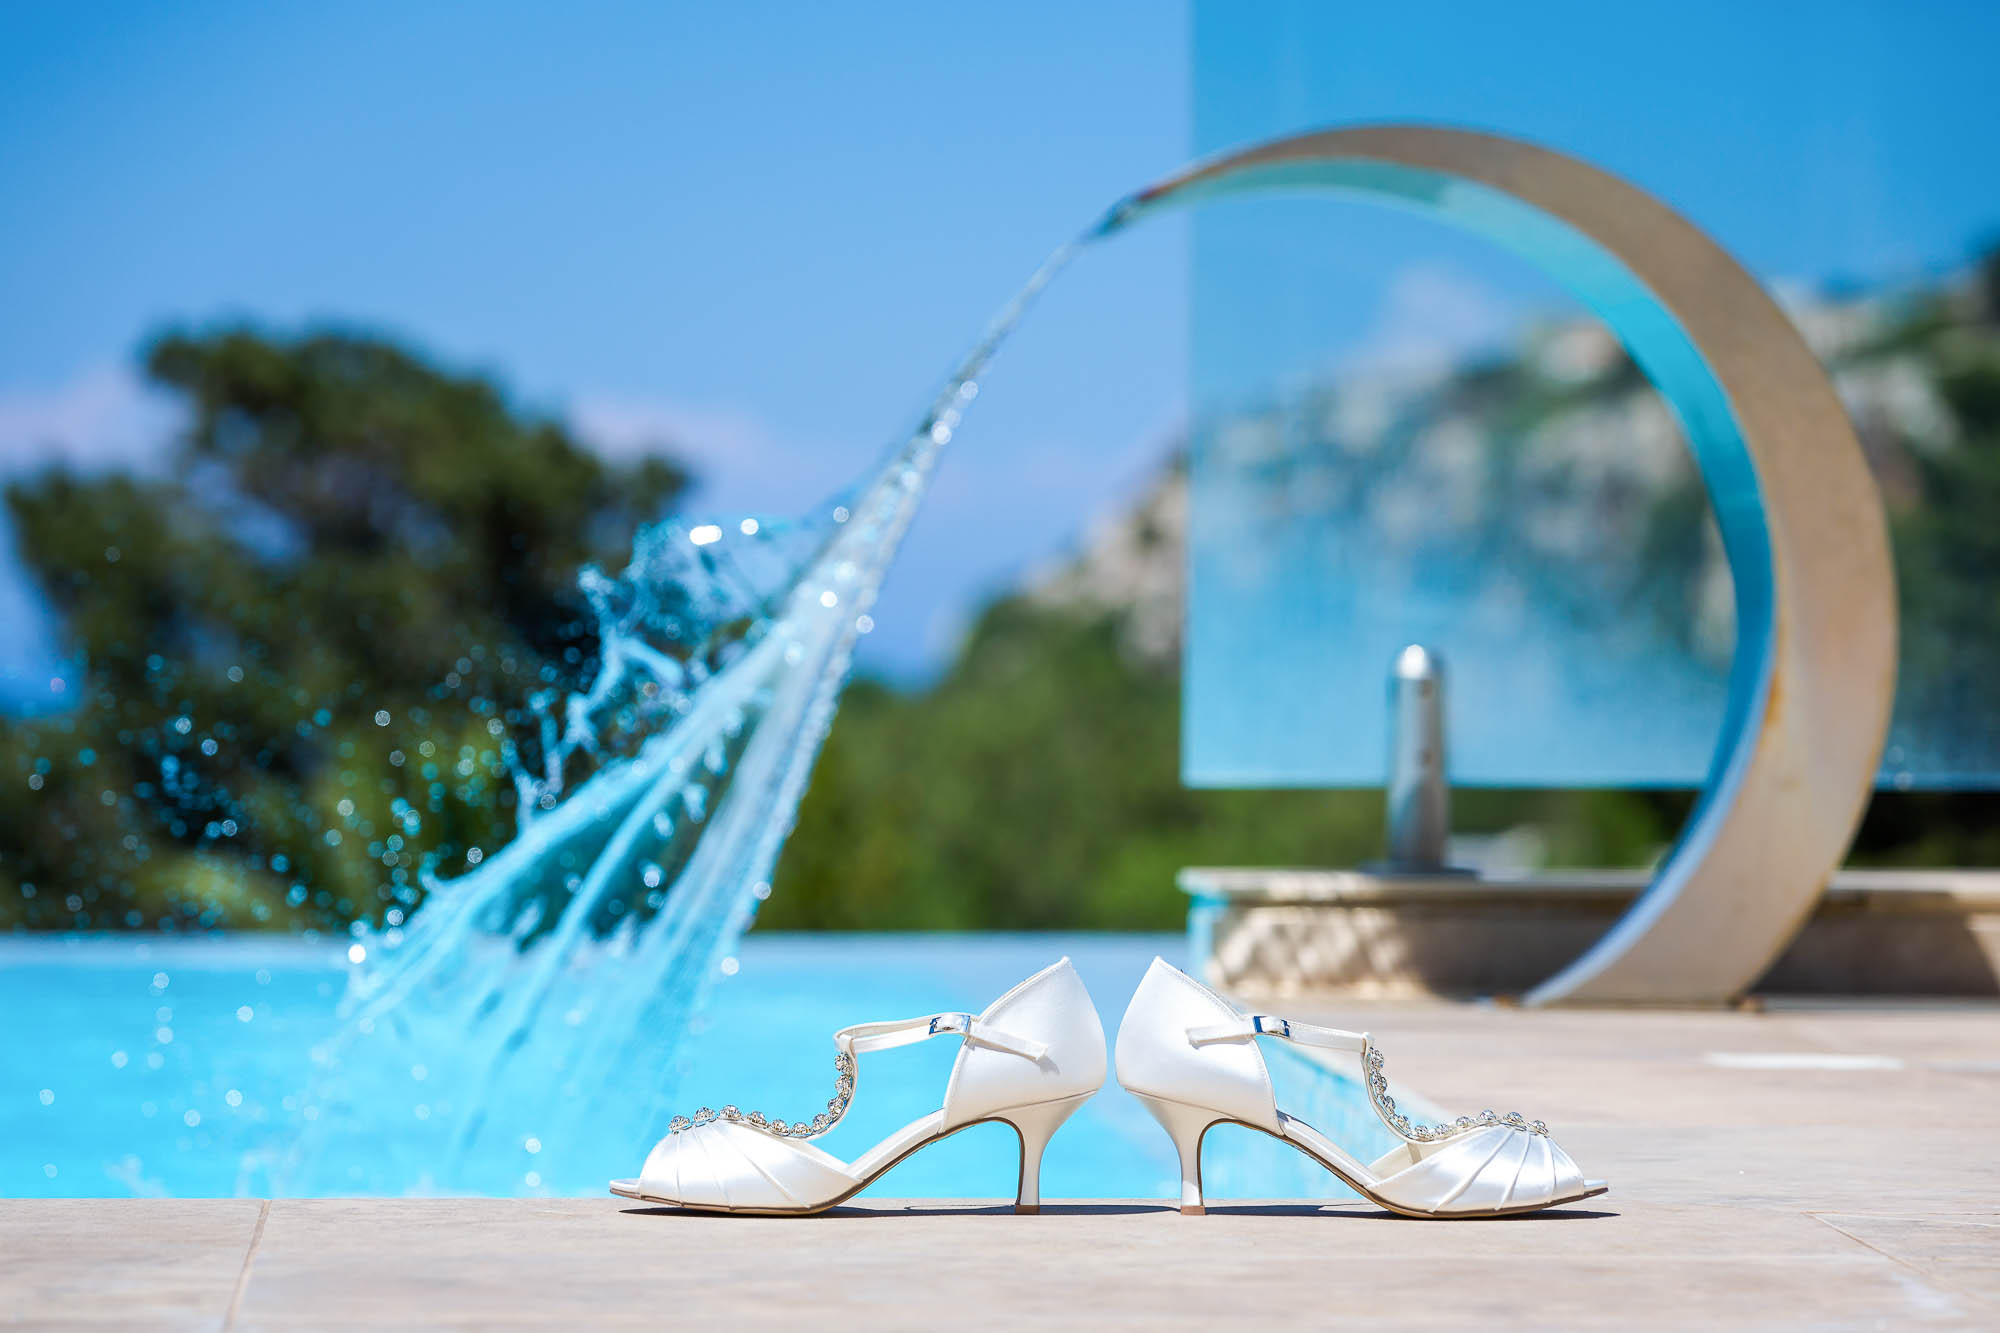 Brides wedding shoes next to her destination vill's pool. Photo by Elliot Nichol Photography.